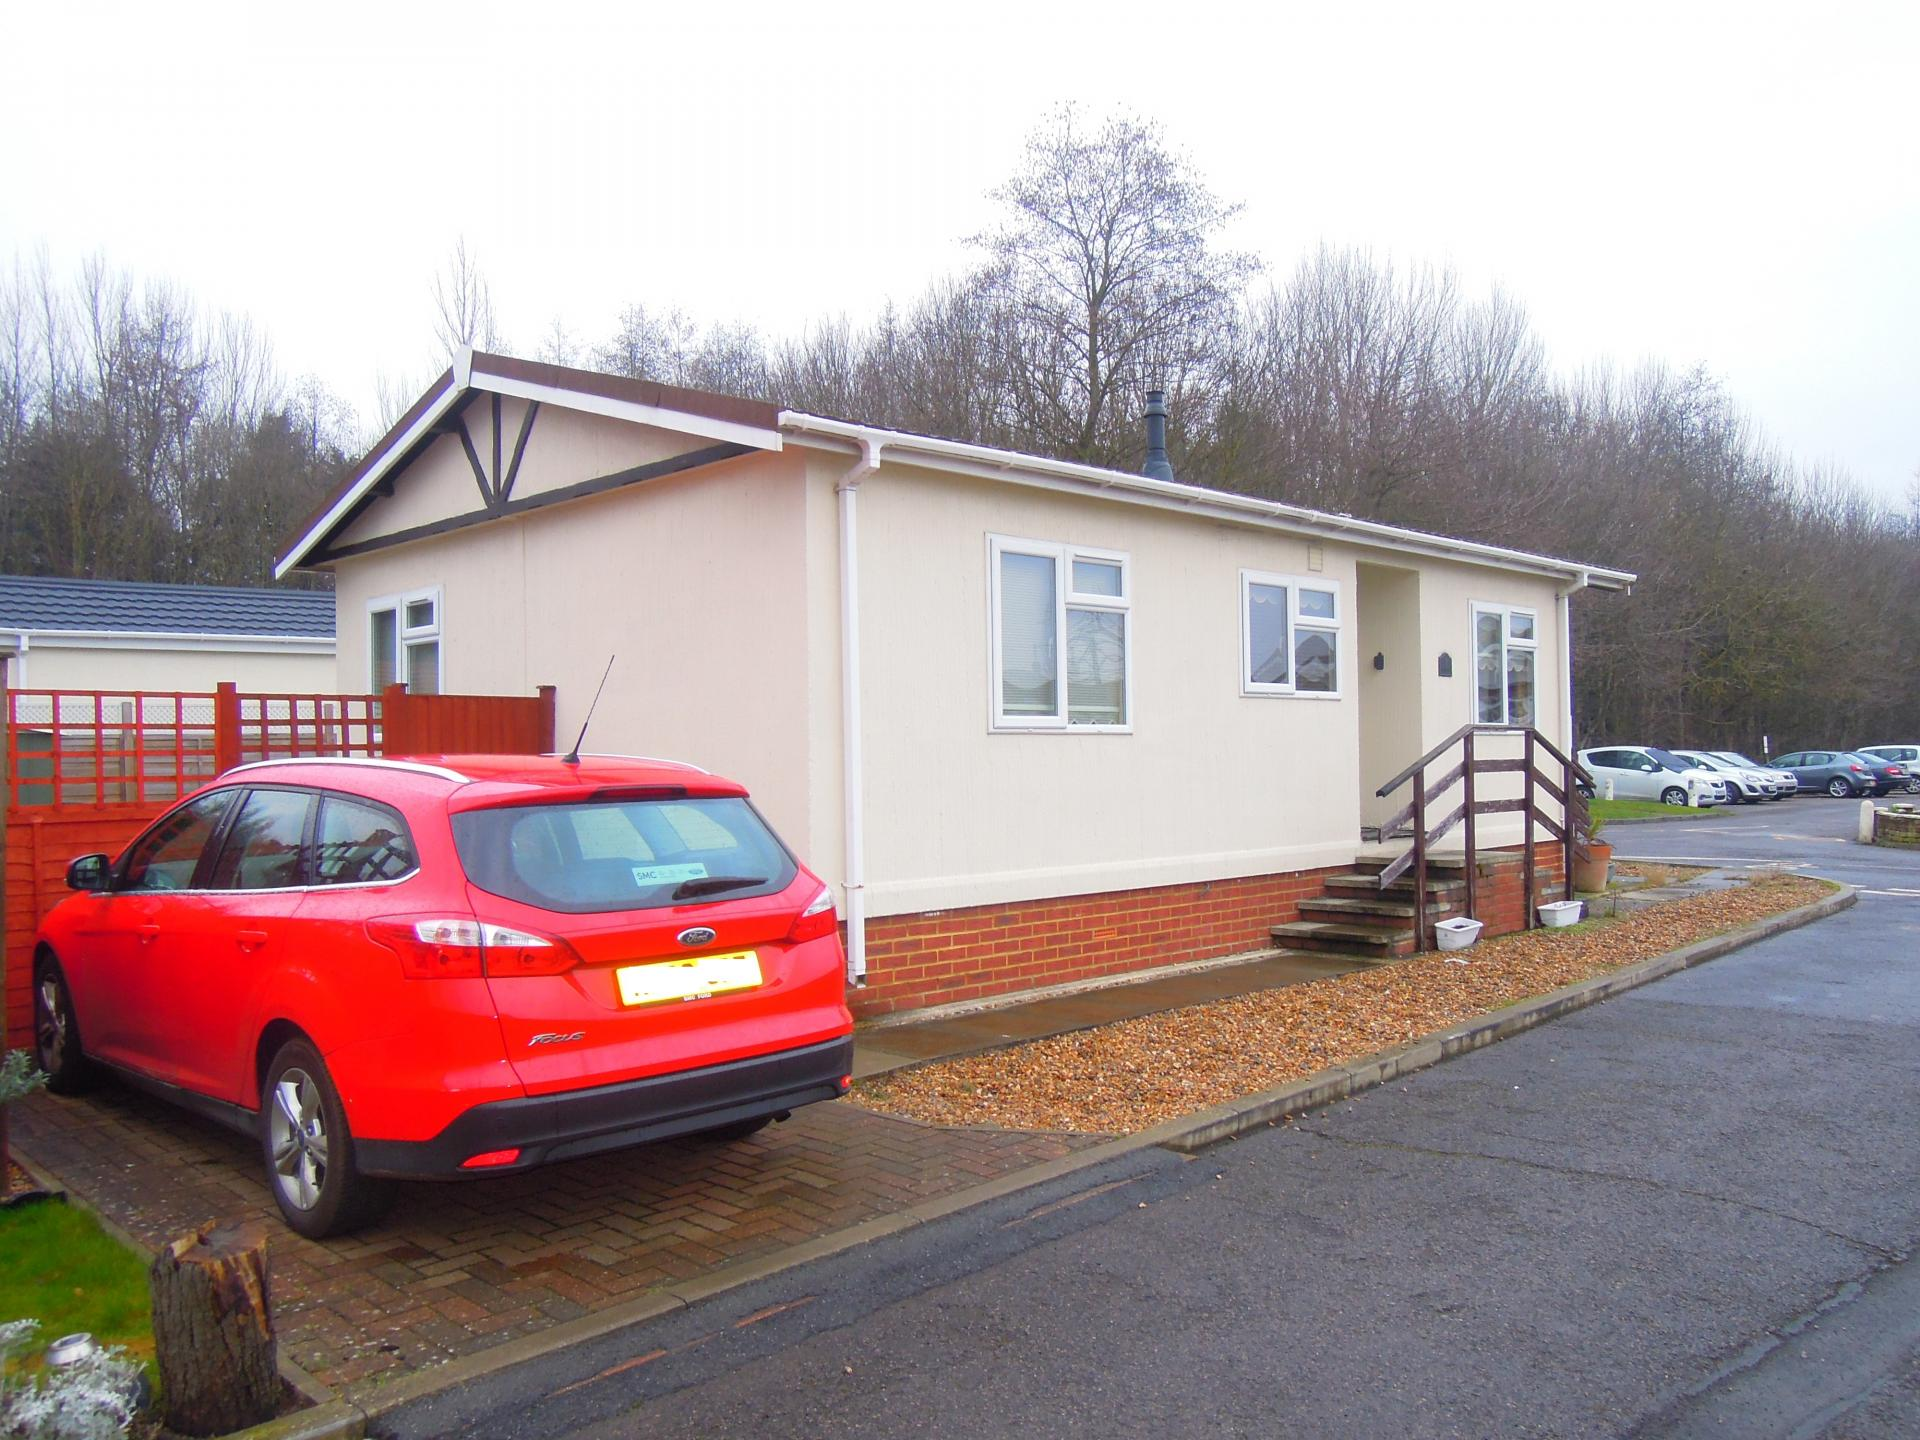 2 Bedroom House For Sale In Slough